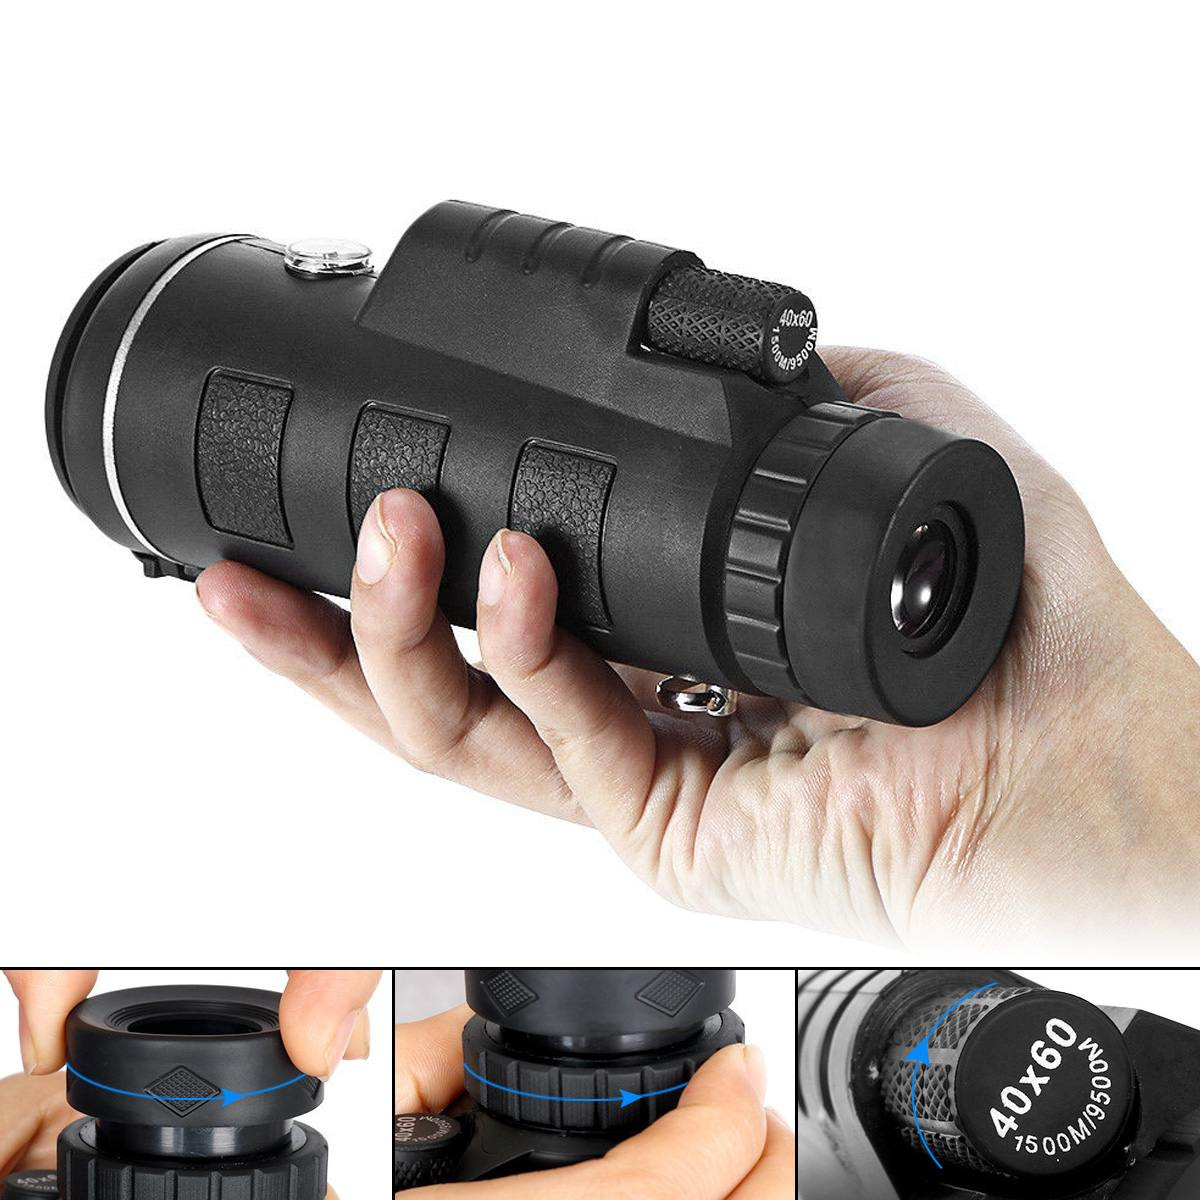 telescope telephoto zoom photo camera lens for smartphones is very compact and easily portable